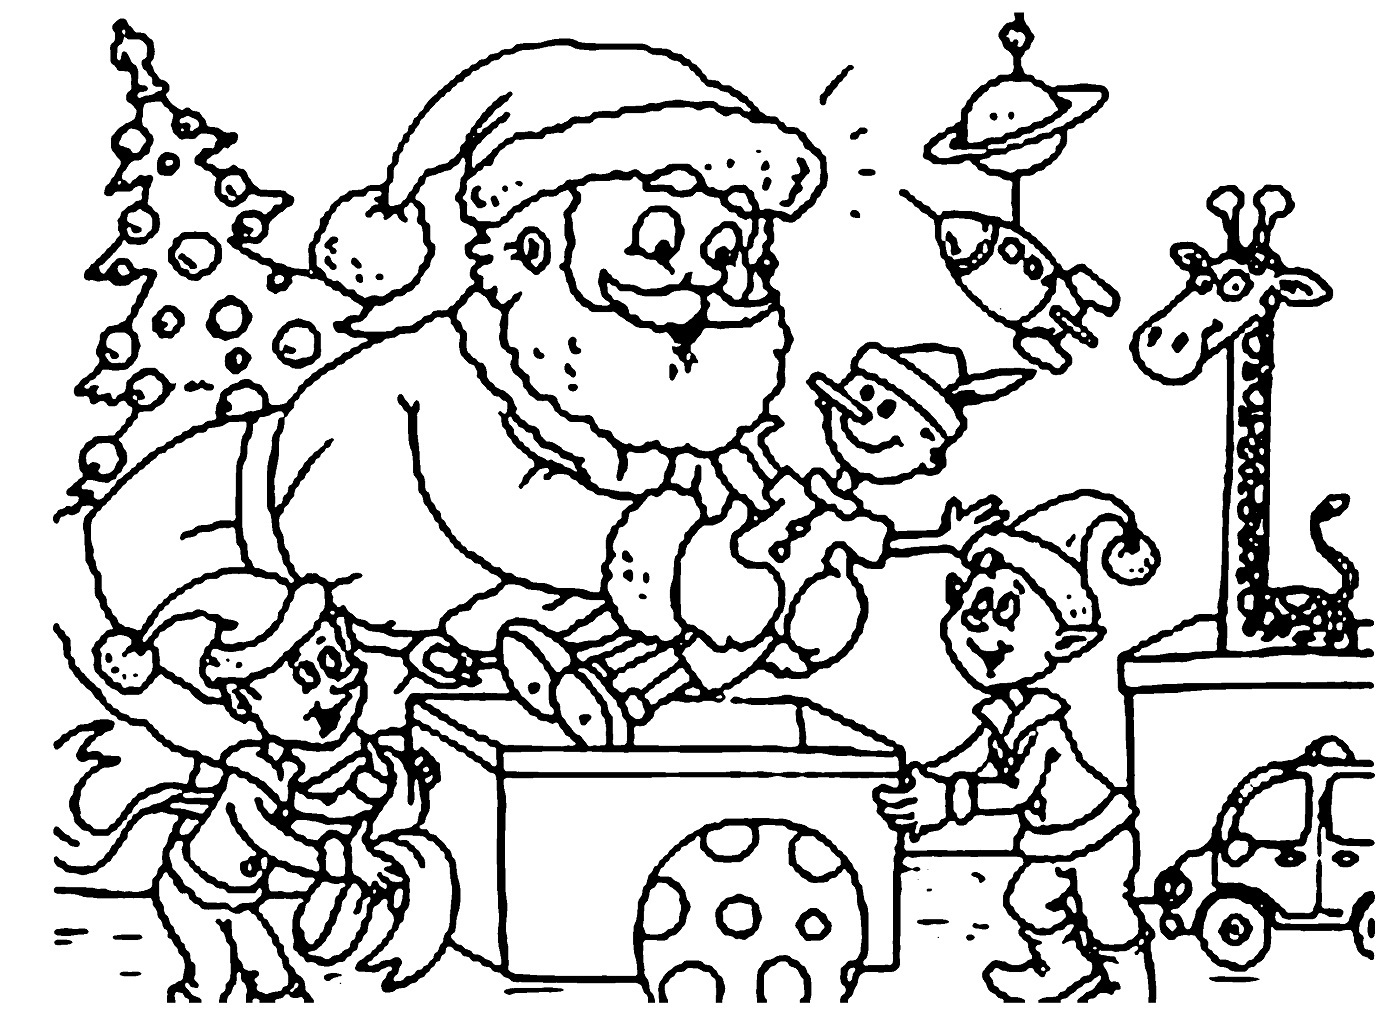 father christmas online coloring pages - photo#30